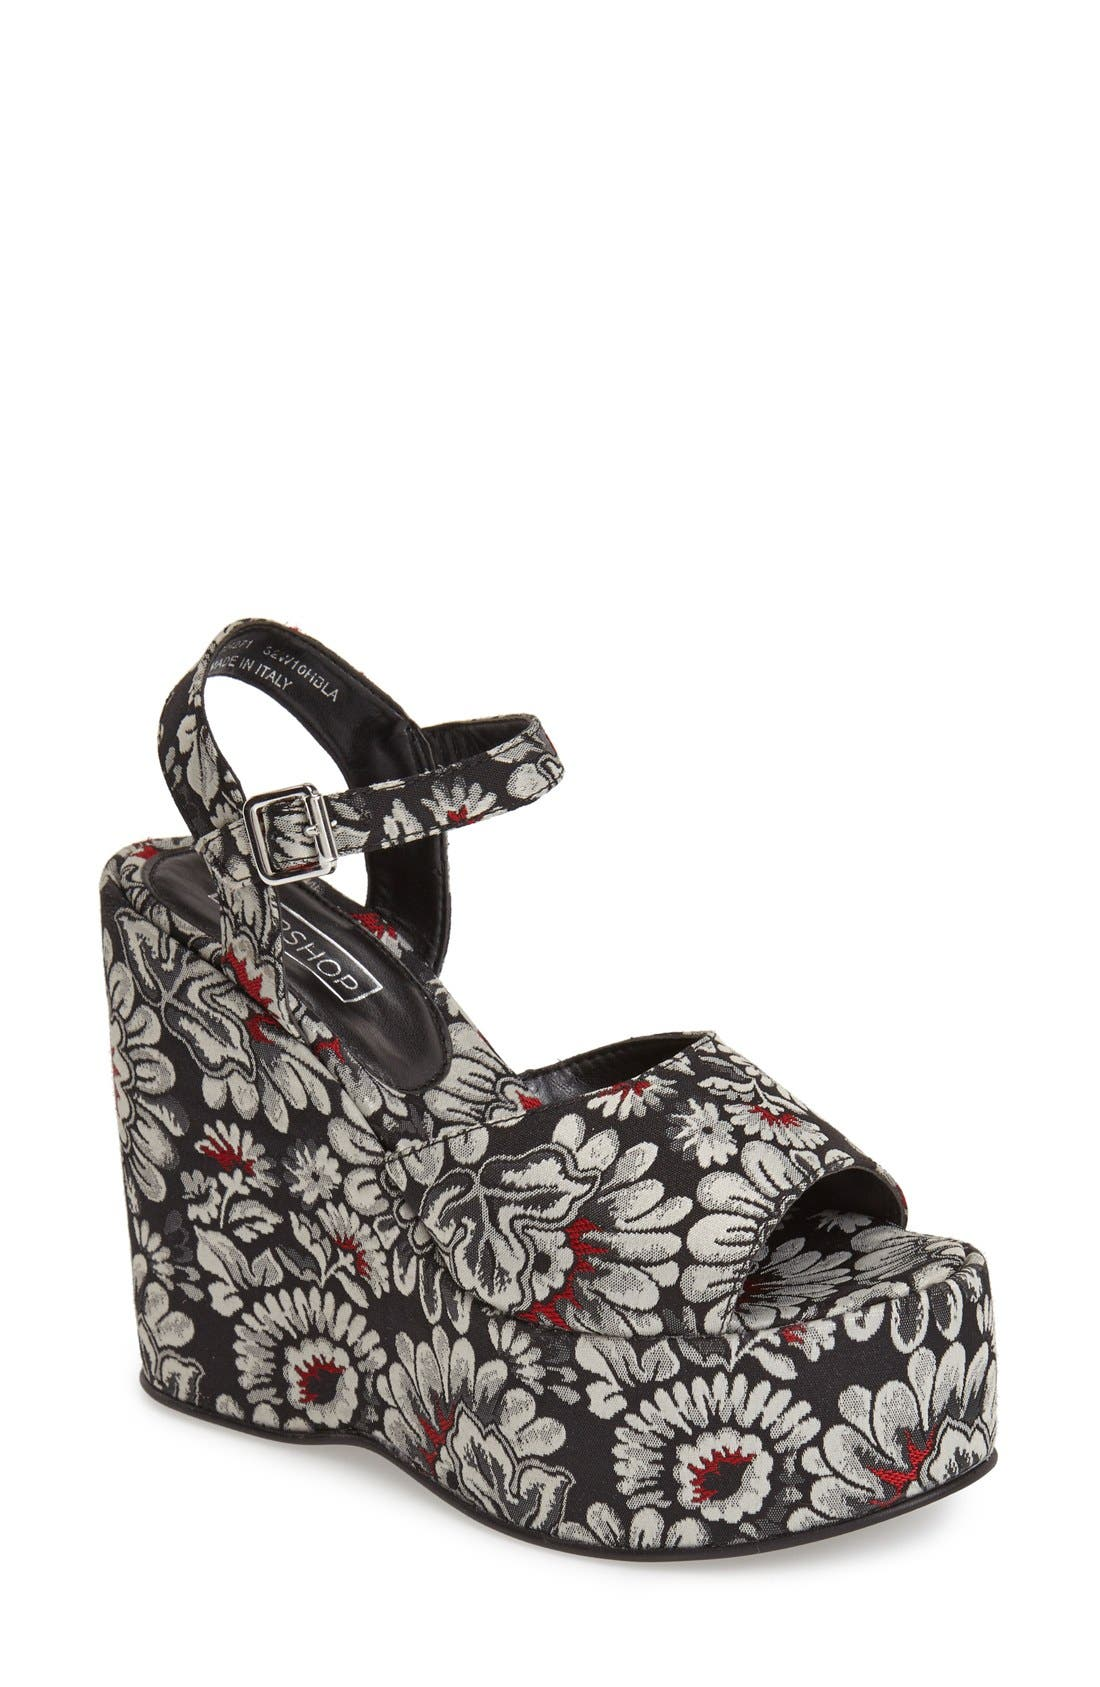 Main Image - Topshop 'Wallflower' Wedge Sandal (Women)